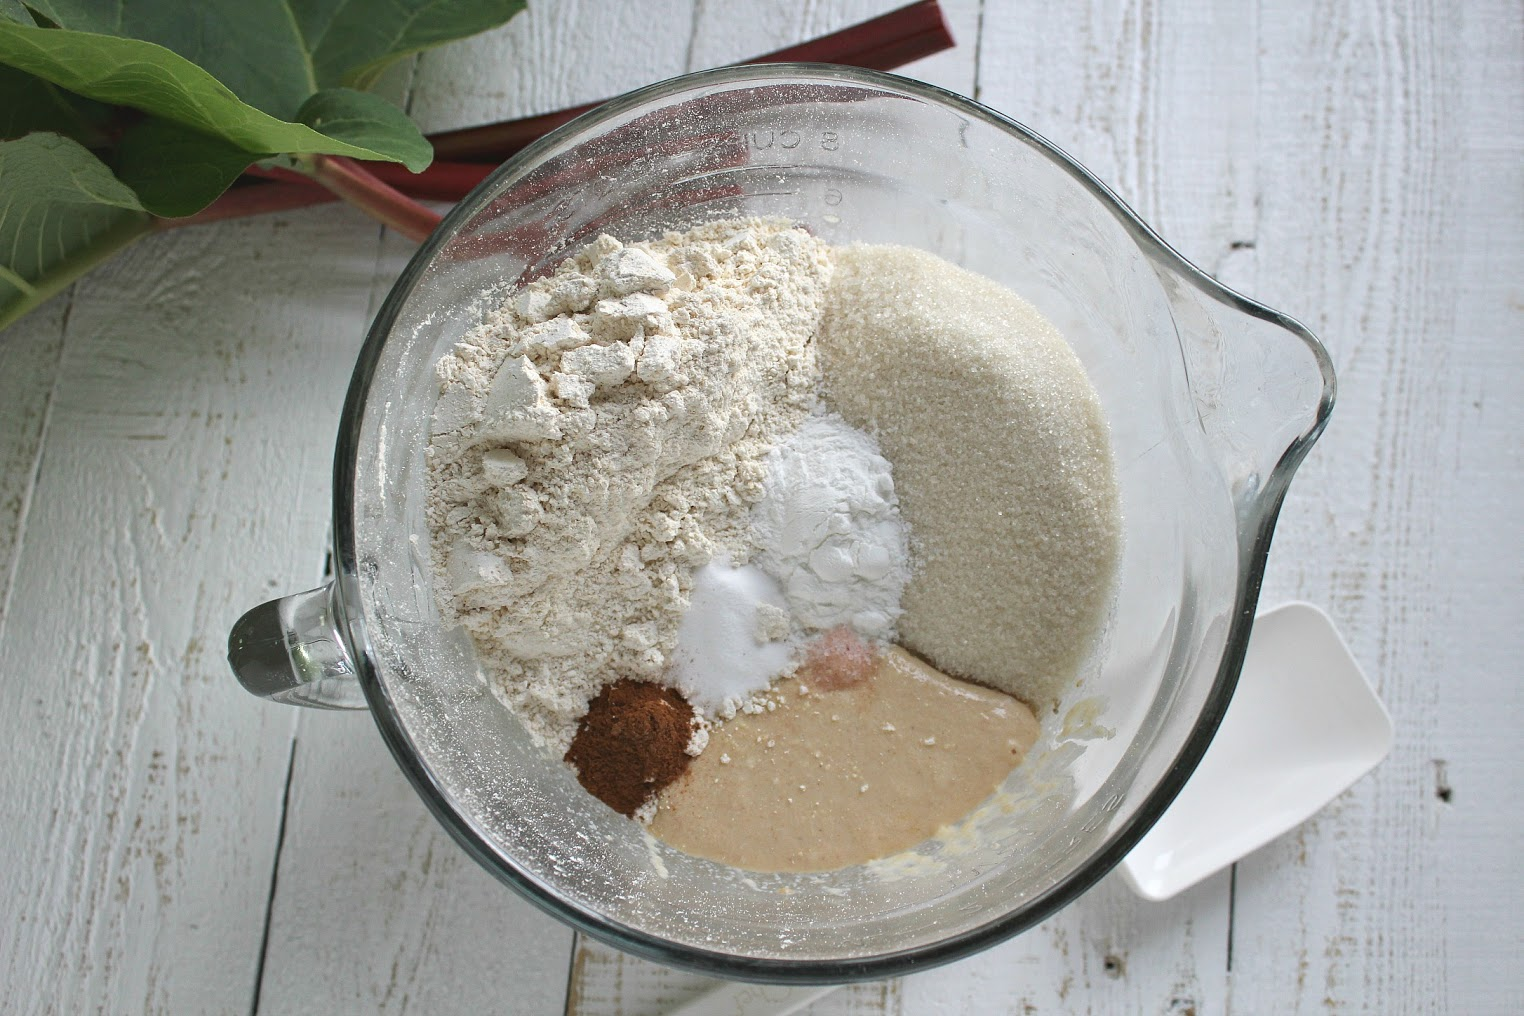 Add the dry ingredients - flour, sugar, baking powder, baking soda, cinnamon, and salt - to the batter and mix until combined.